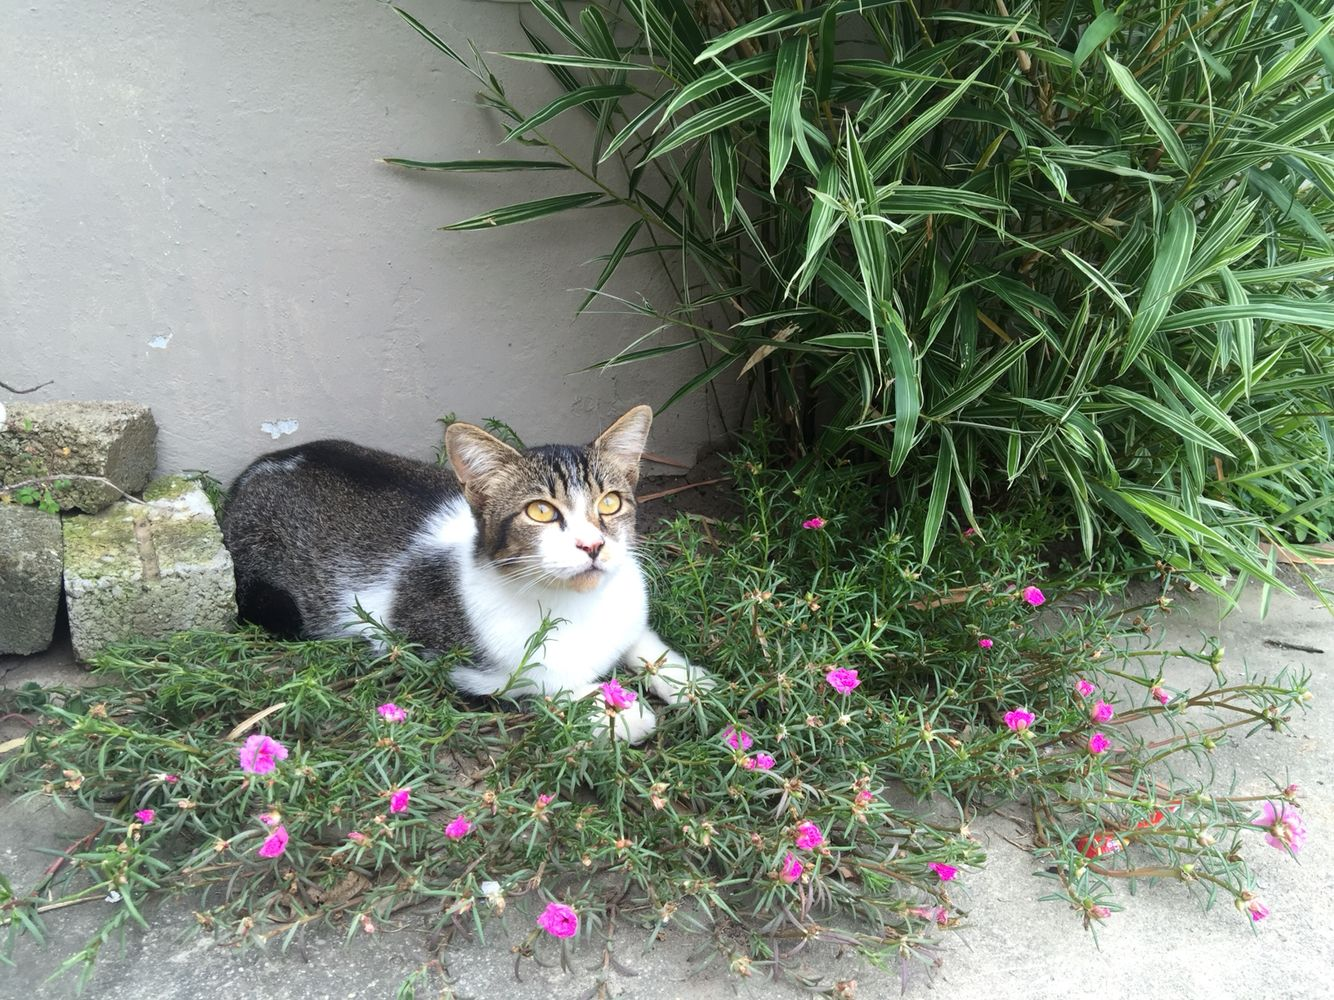 Pin by lily on cat pinterest cat flowers cats blossoms kitty cats gatos cats and kittens bloemen flower cat izmirmasajfo